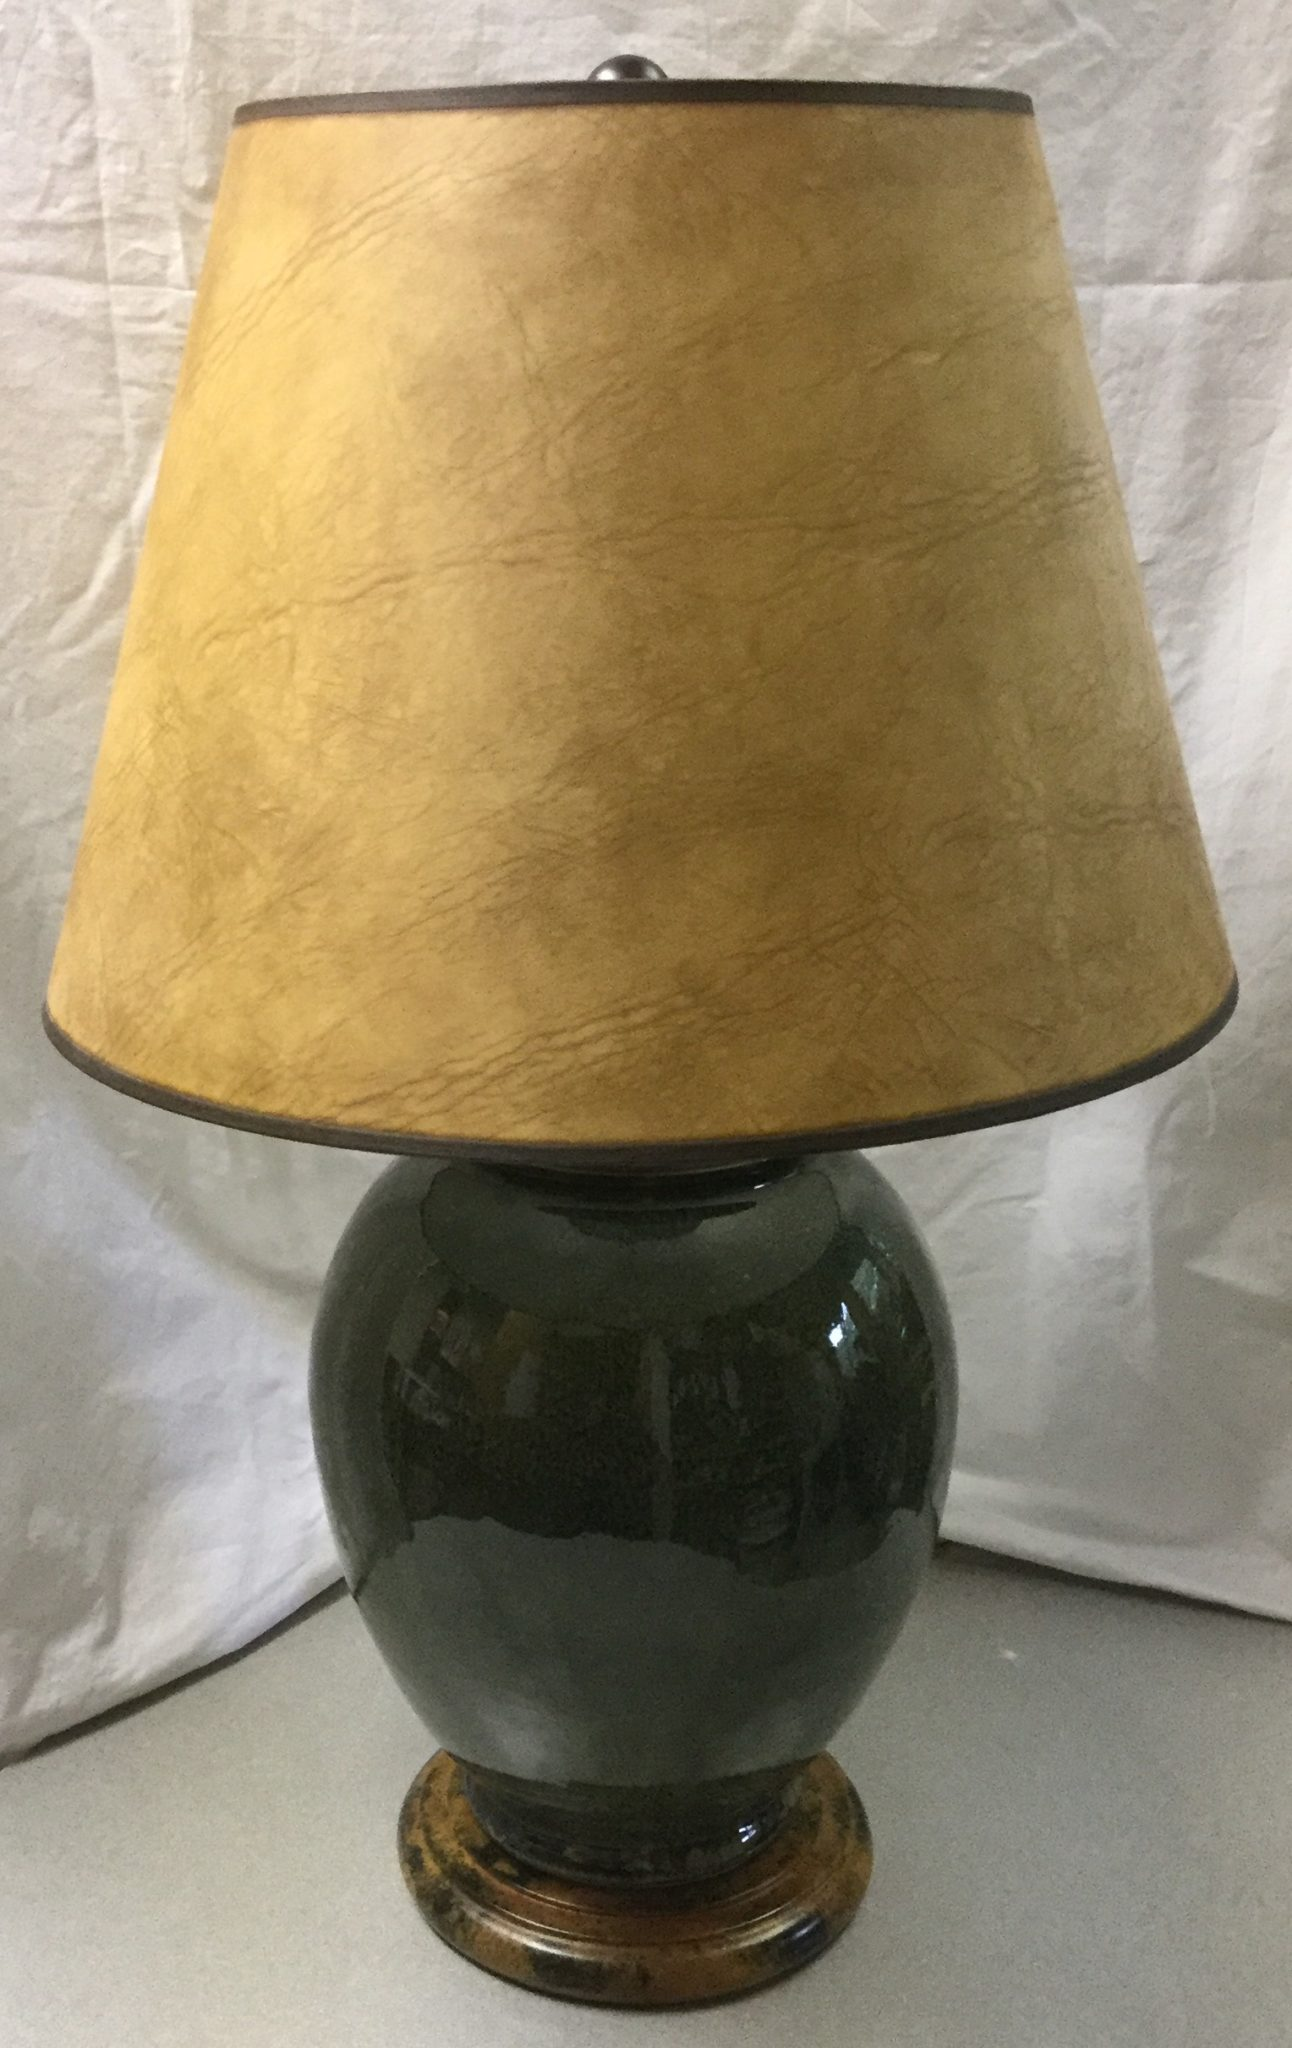 green jar lamp with faux leather shade stock swap furniture. Black Bedroom Furniture Sets. Home Design Ideas